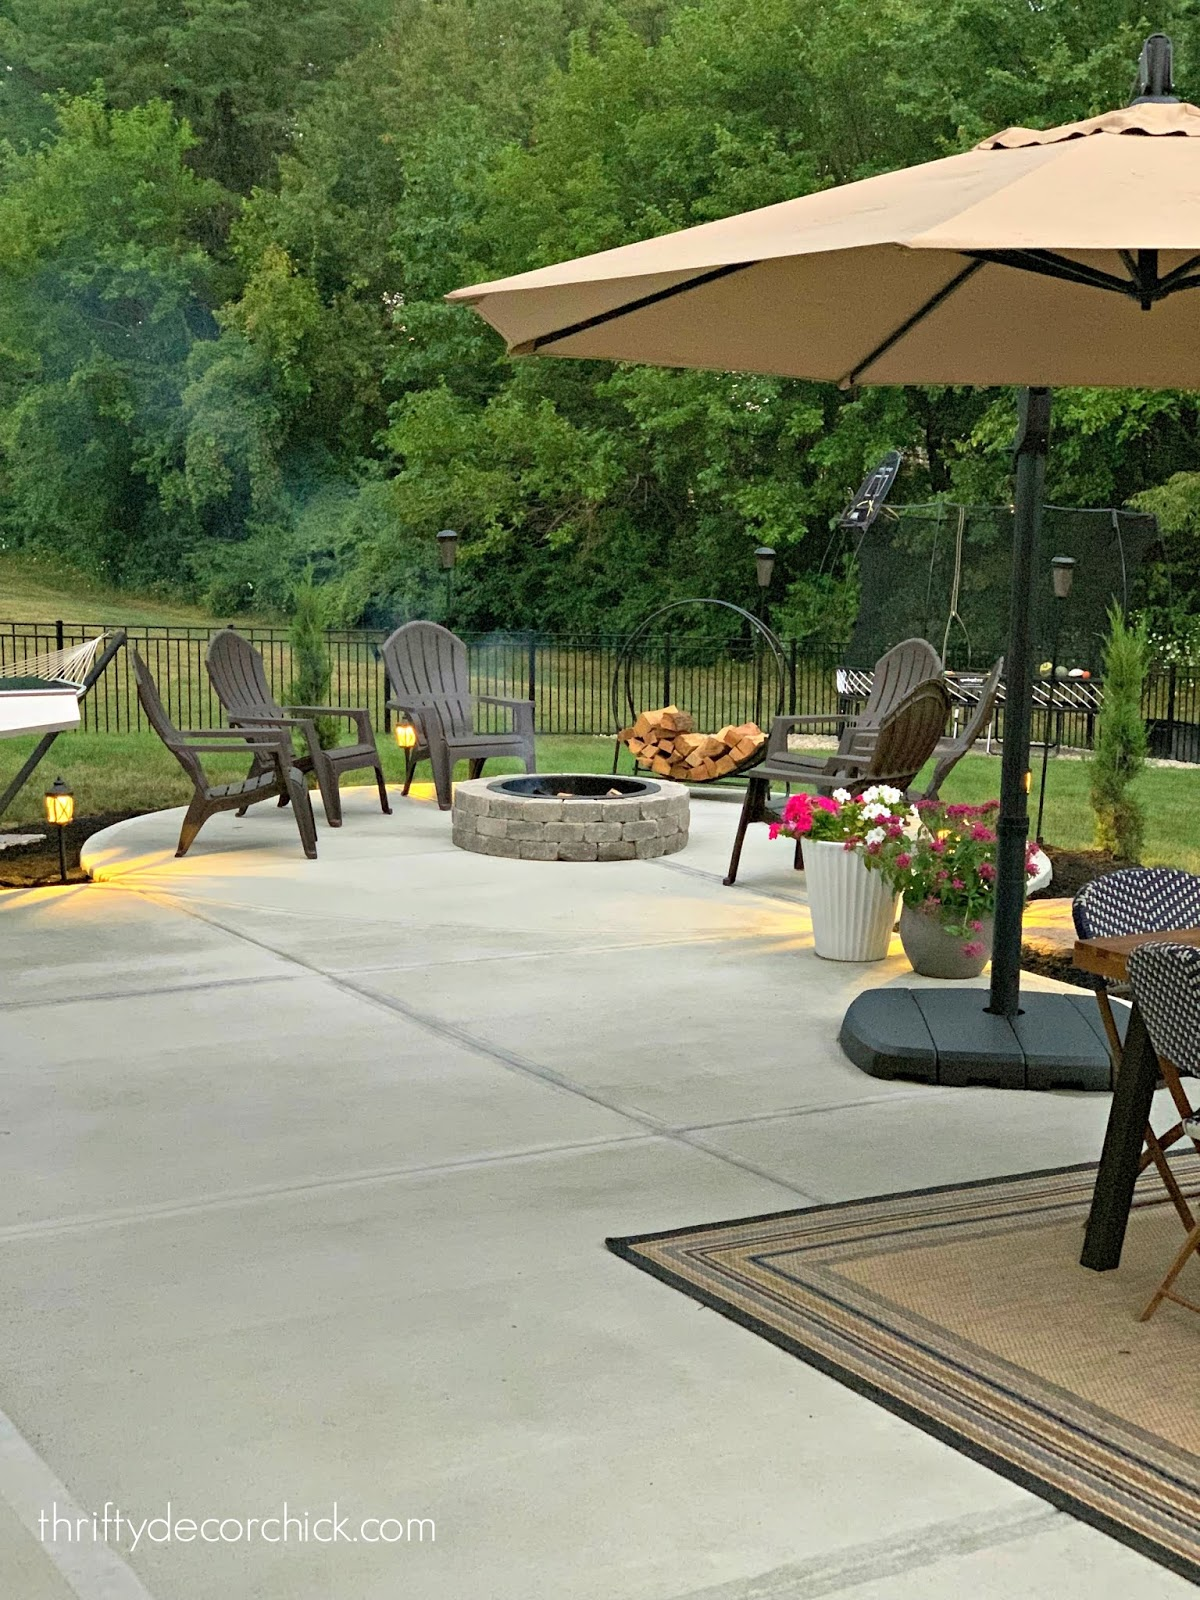 Large basic concrete patio with fire pit area